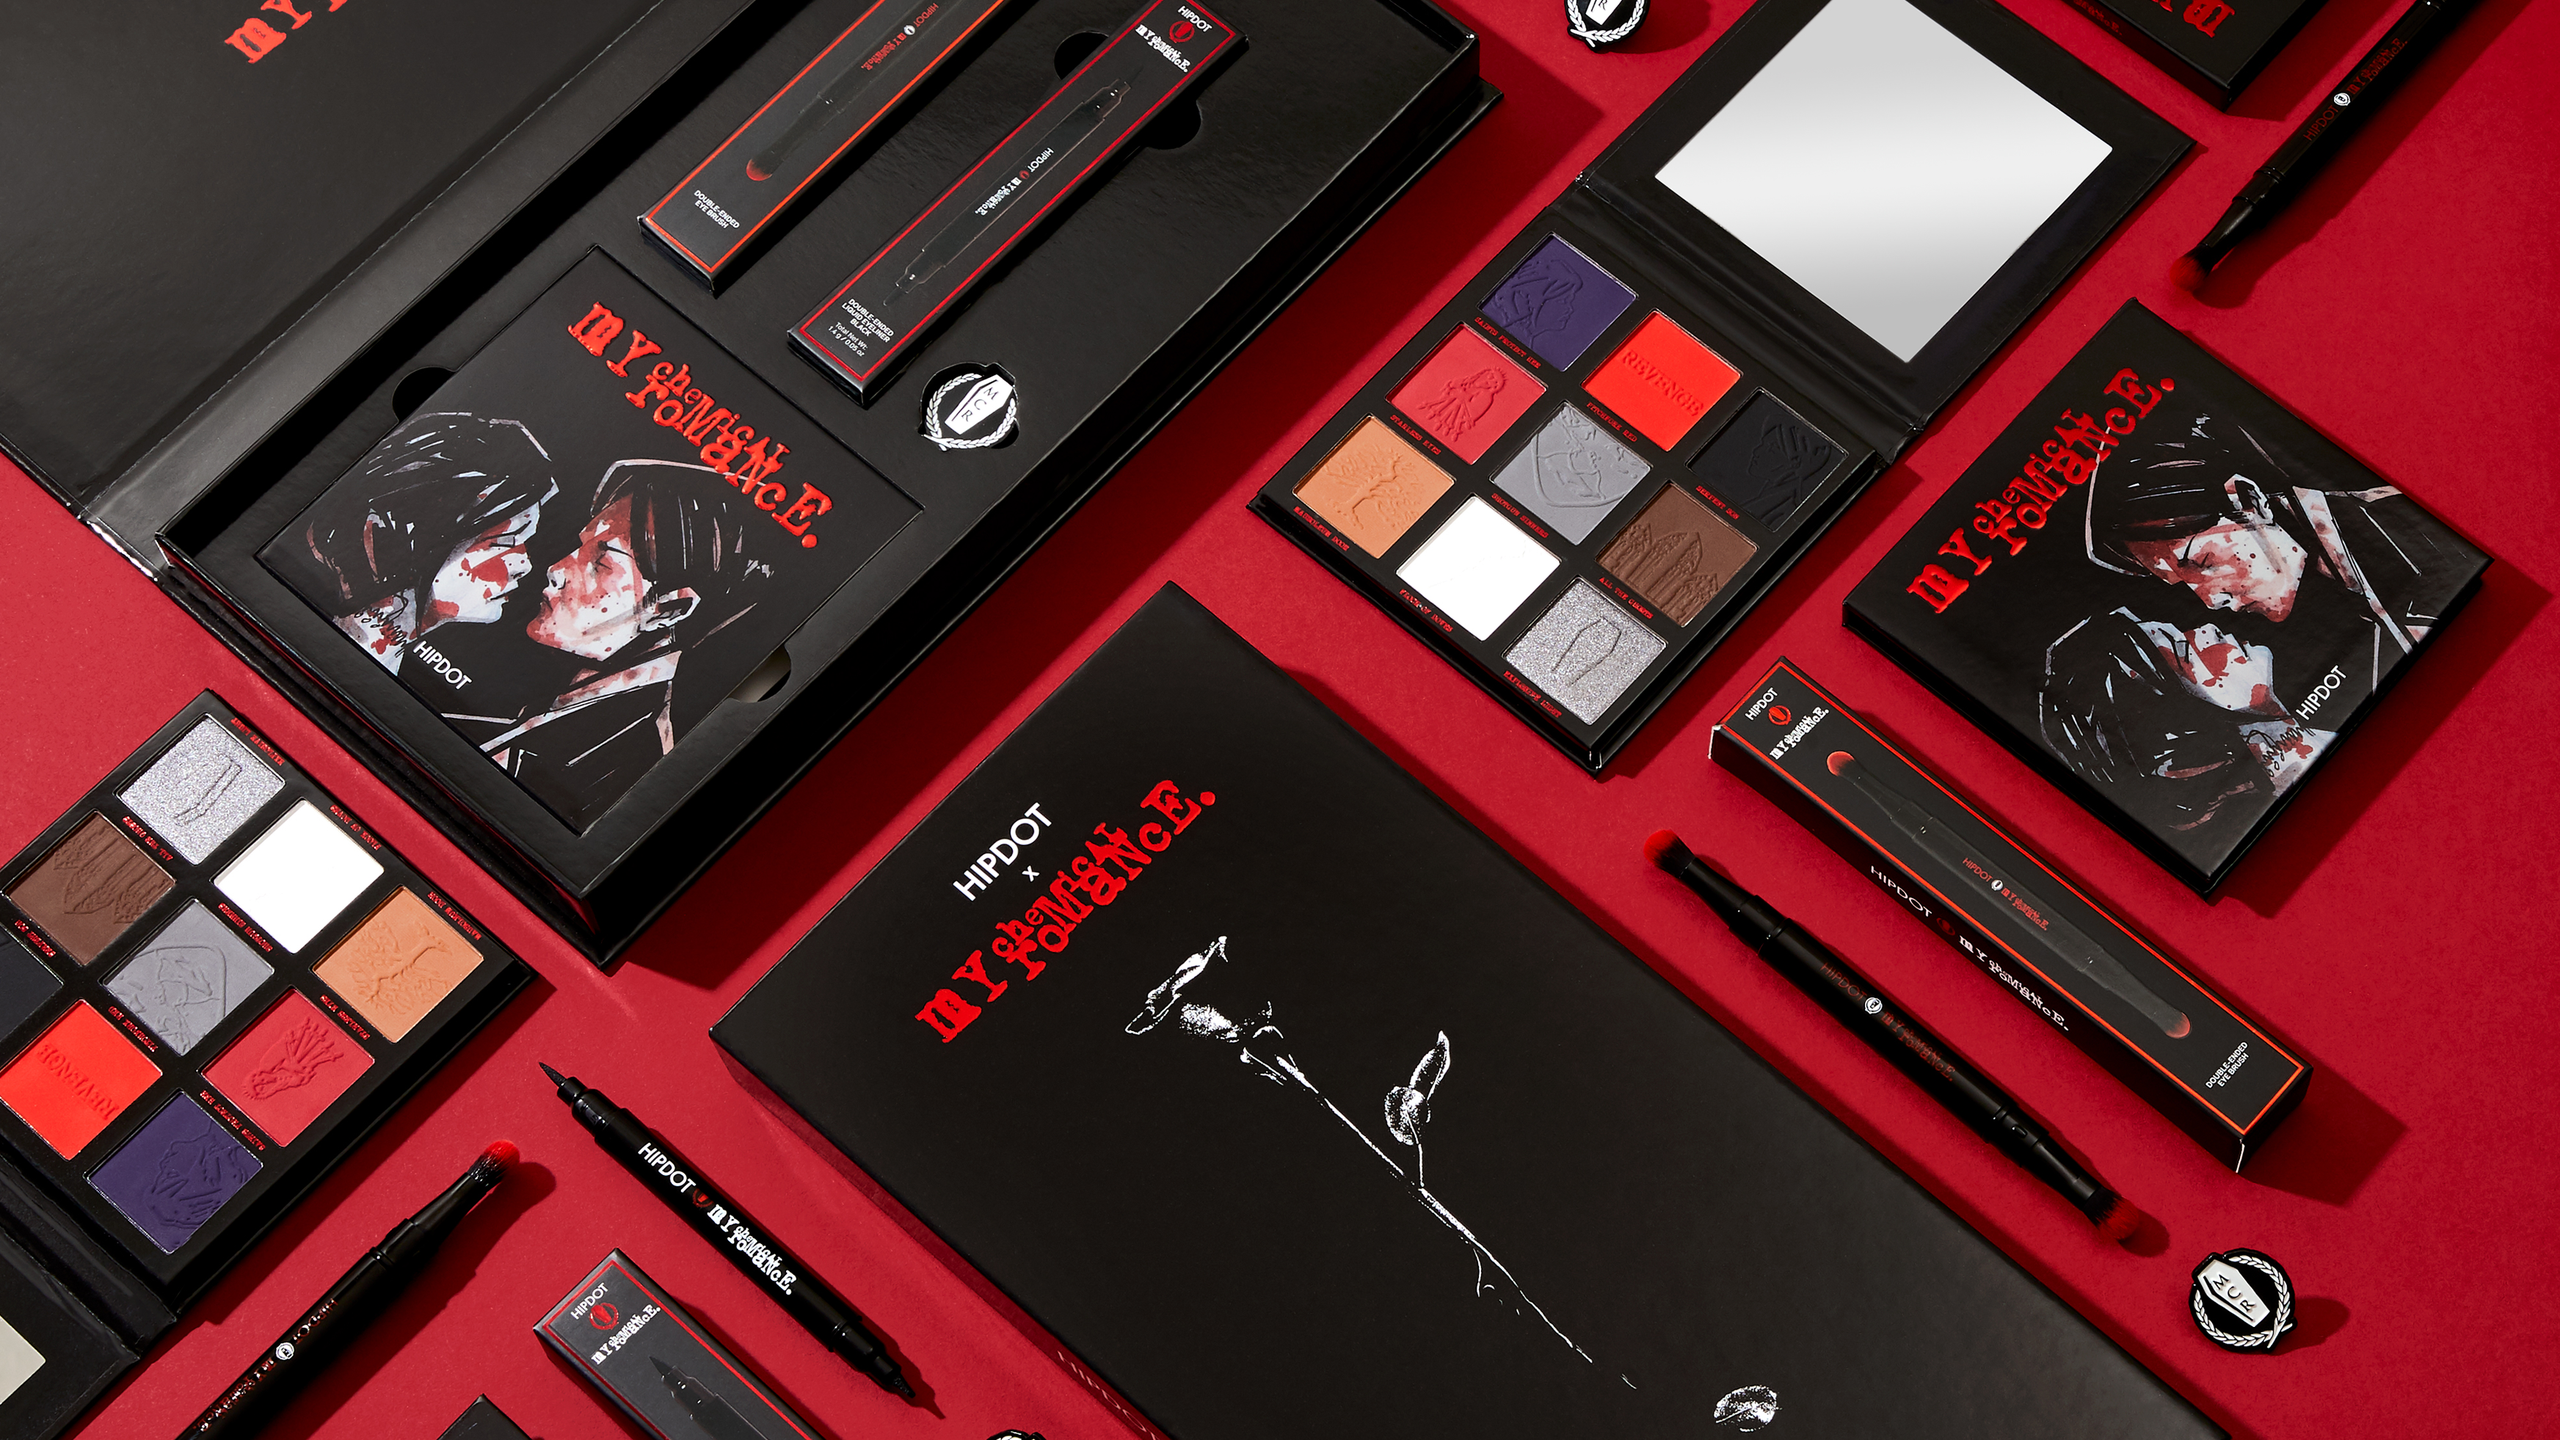 my chemical romance hipdot Three Cheers! My Chemical Romance Now Have Their Own Makeup Line